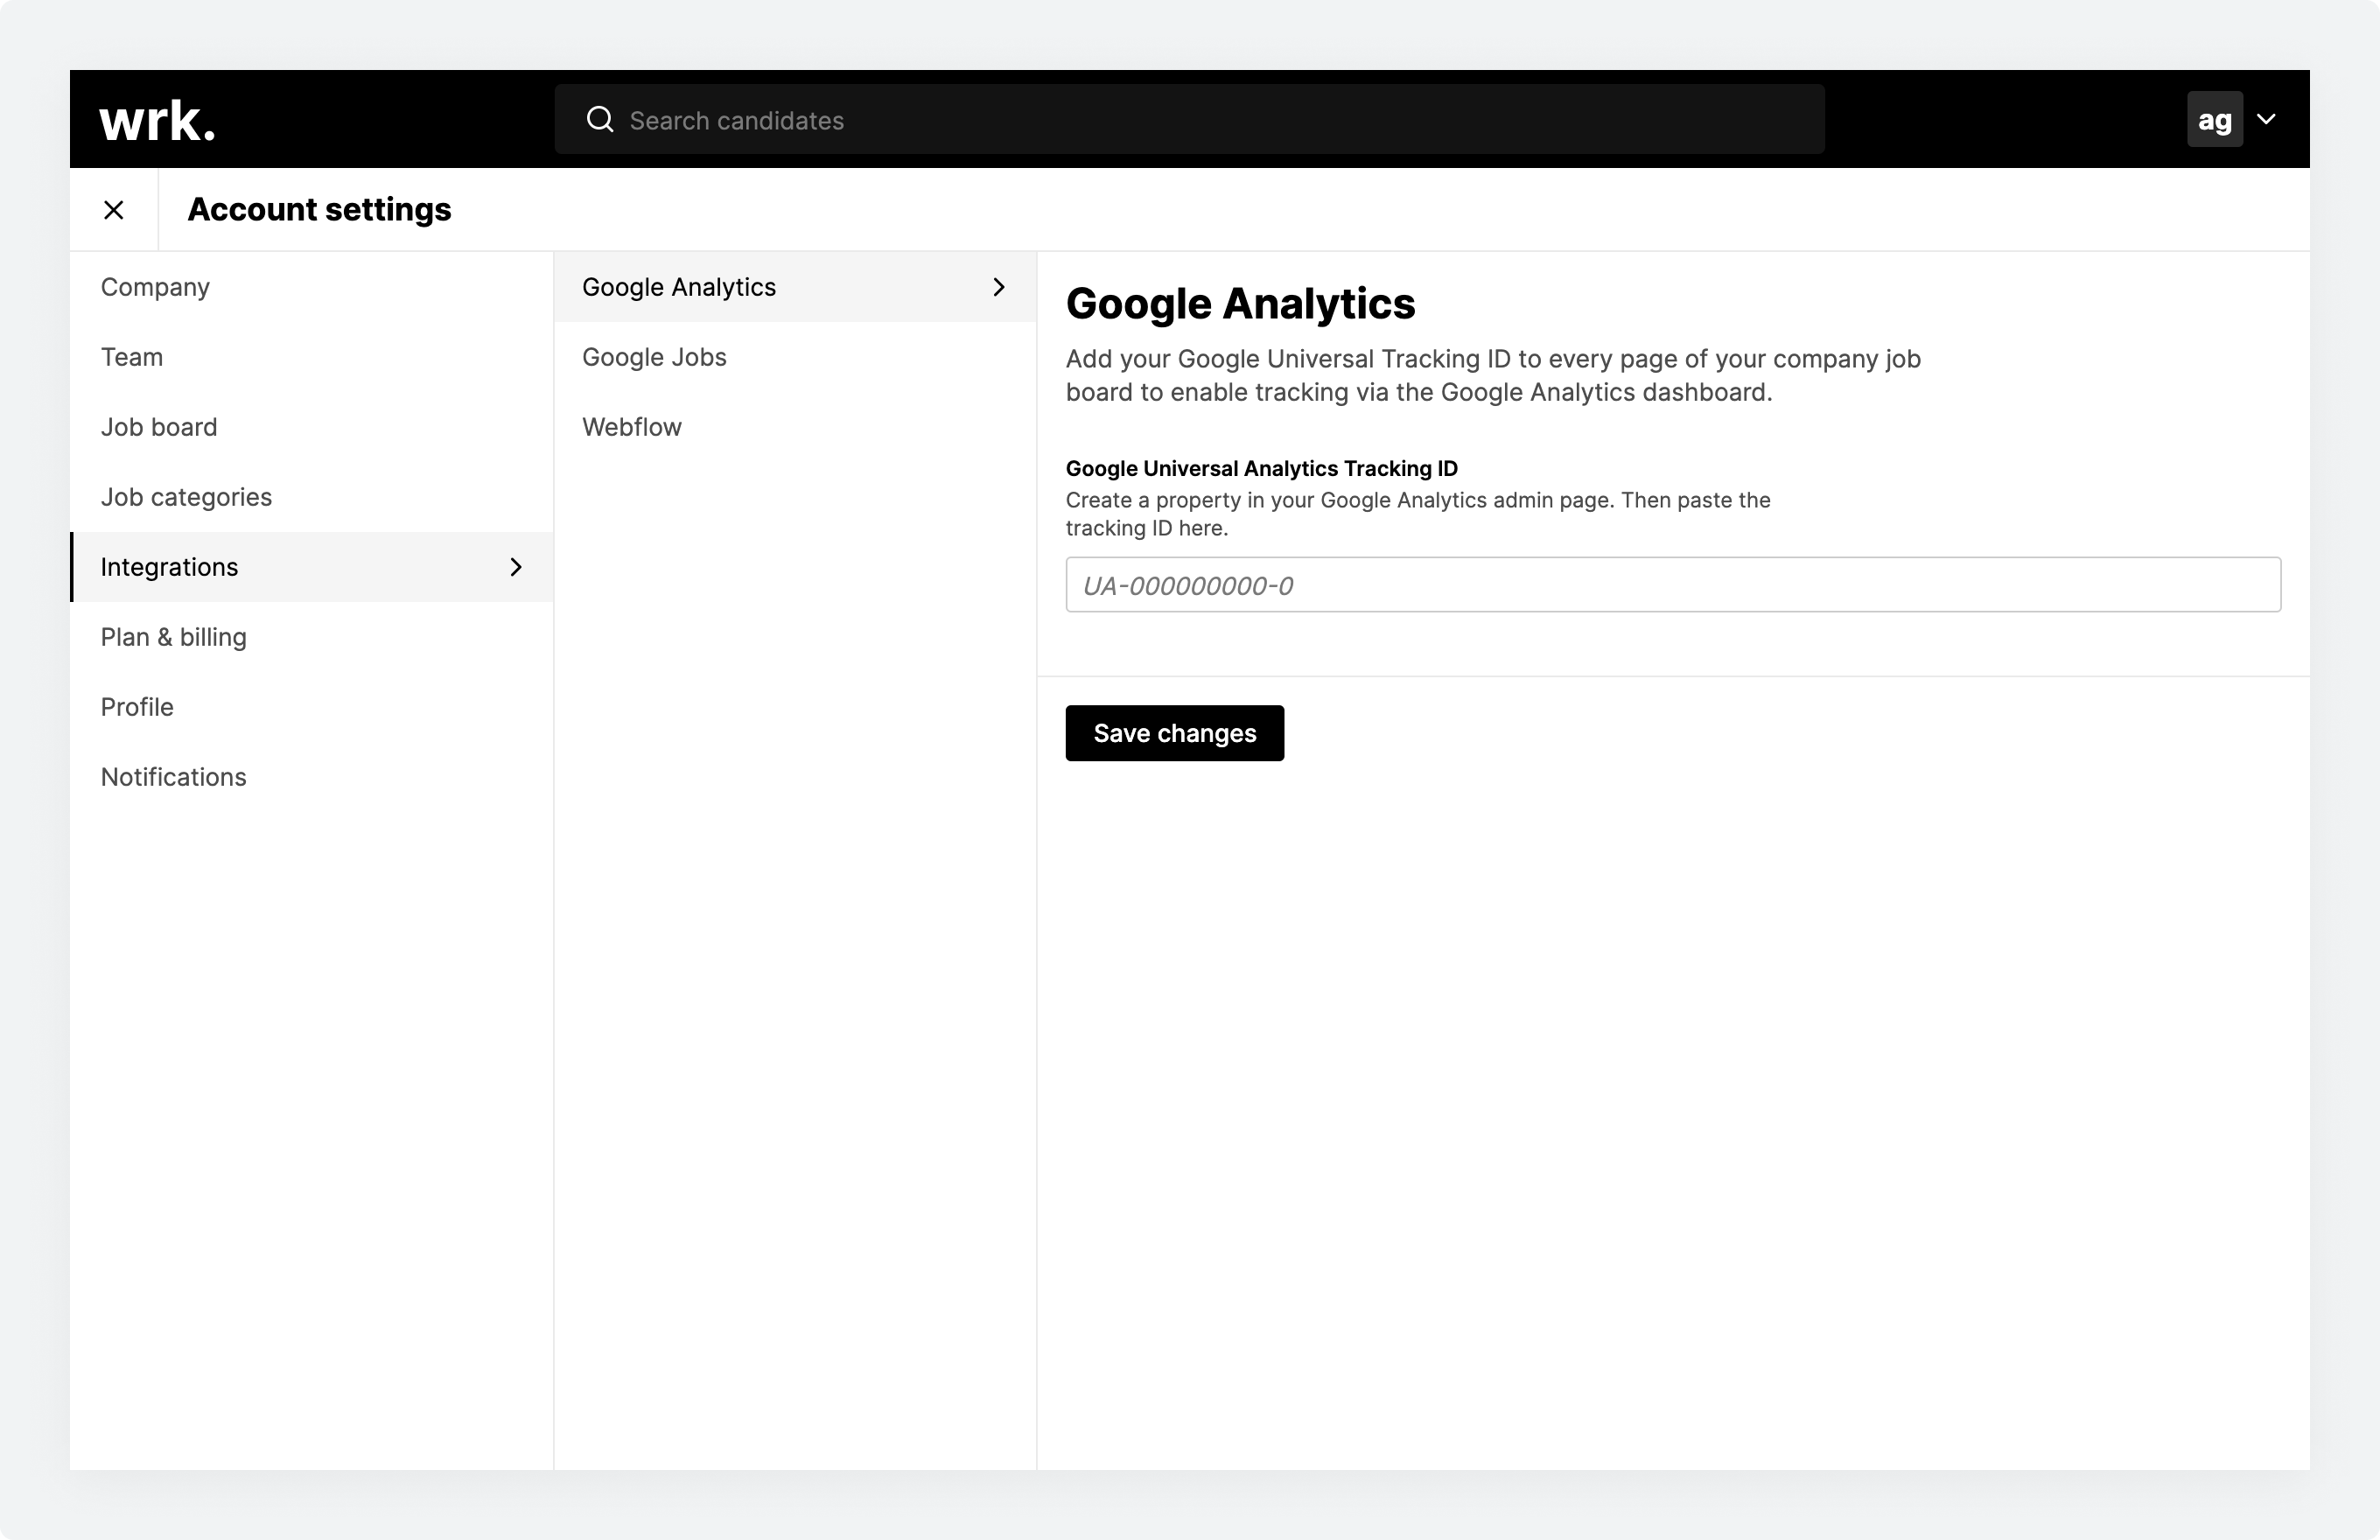 The Google Analytics configuration screen in Wrk